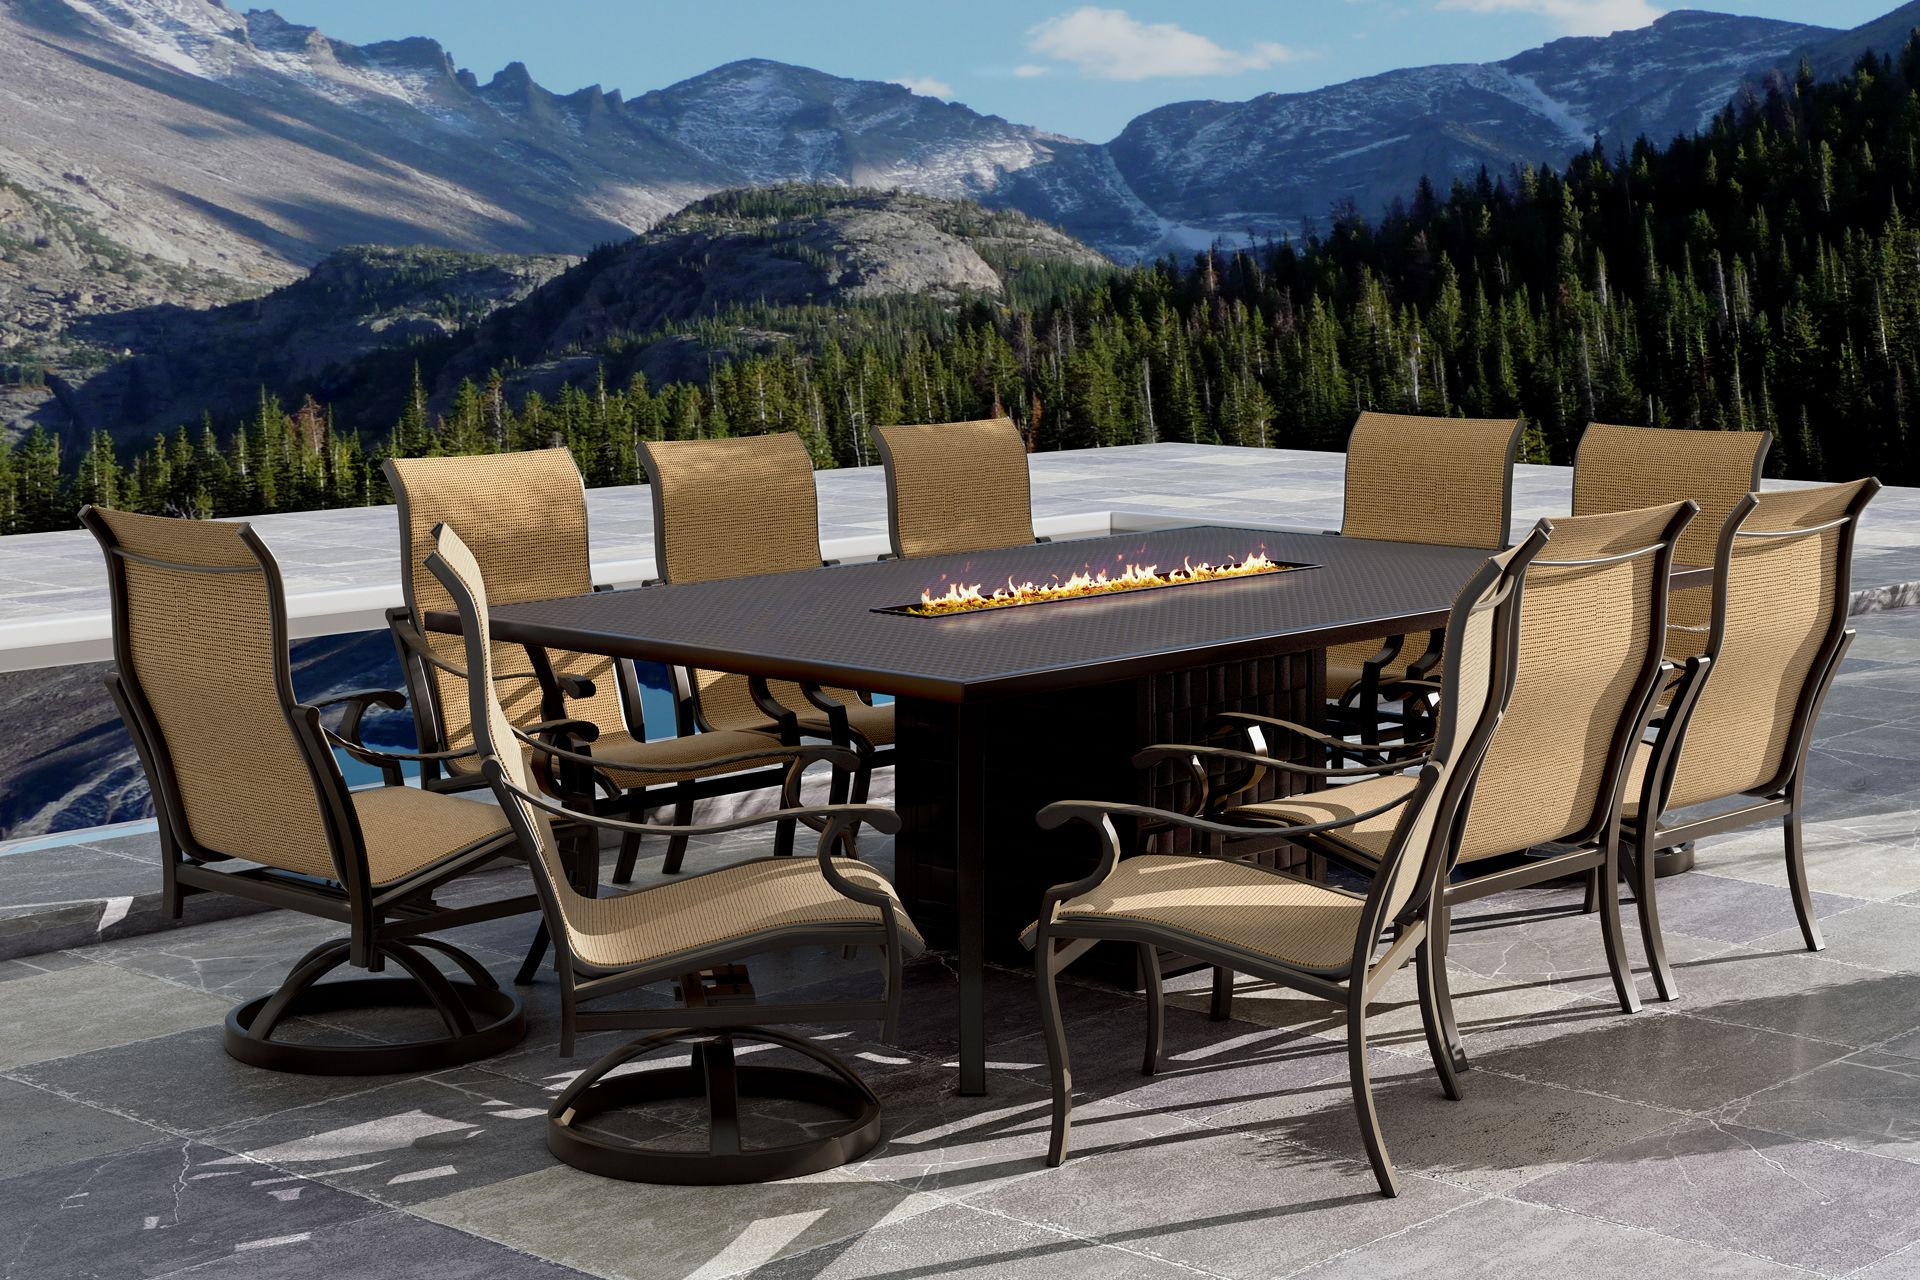 Patio 1 Outdoor Furniture | Outdoor furniture stores ... on Fine Living Patio Set id=52088